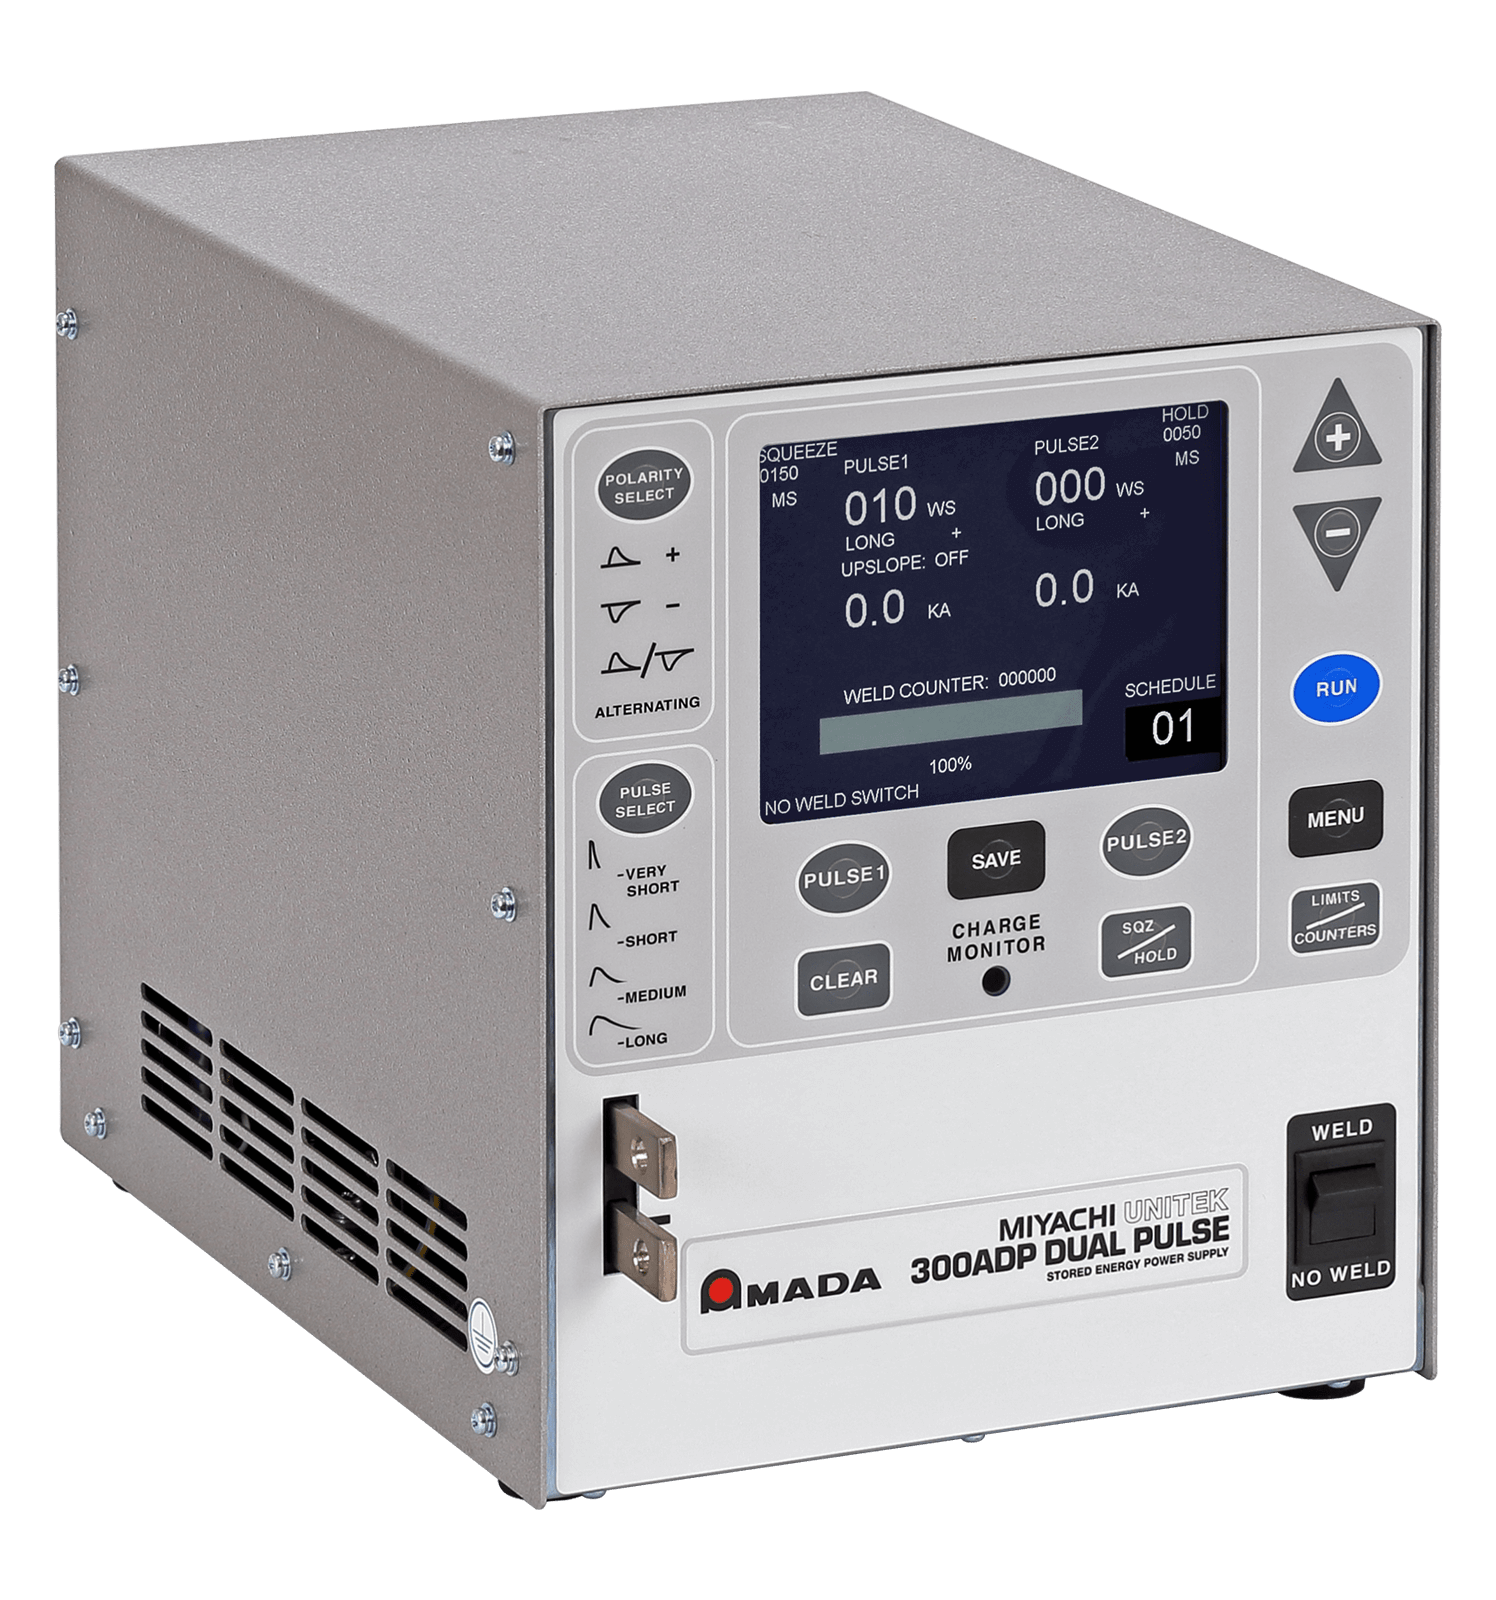 300ADP Advanced Dual Pulse Capacitive Discharge Welder